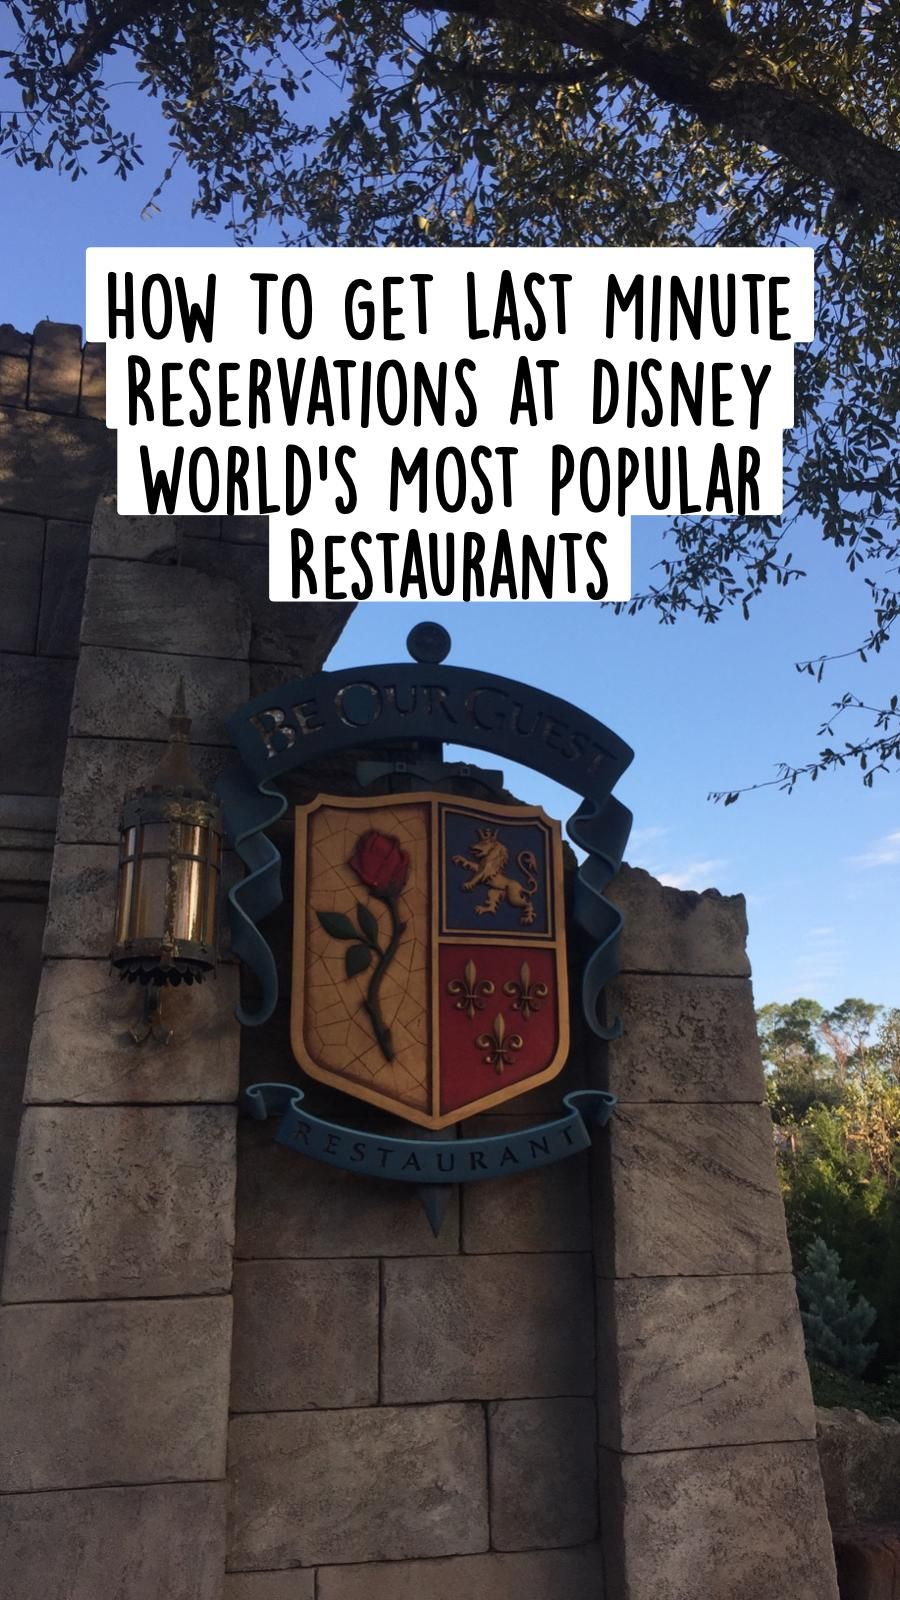 500+ How To Get Last Minute Reservations at Disney World's Most Popular Restaurants